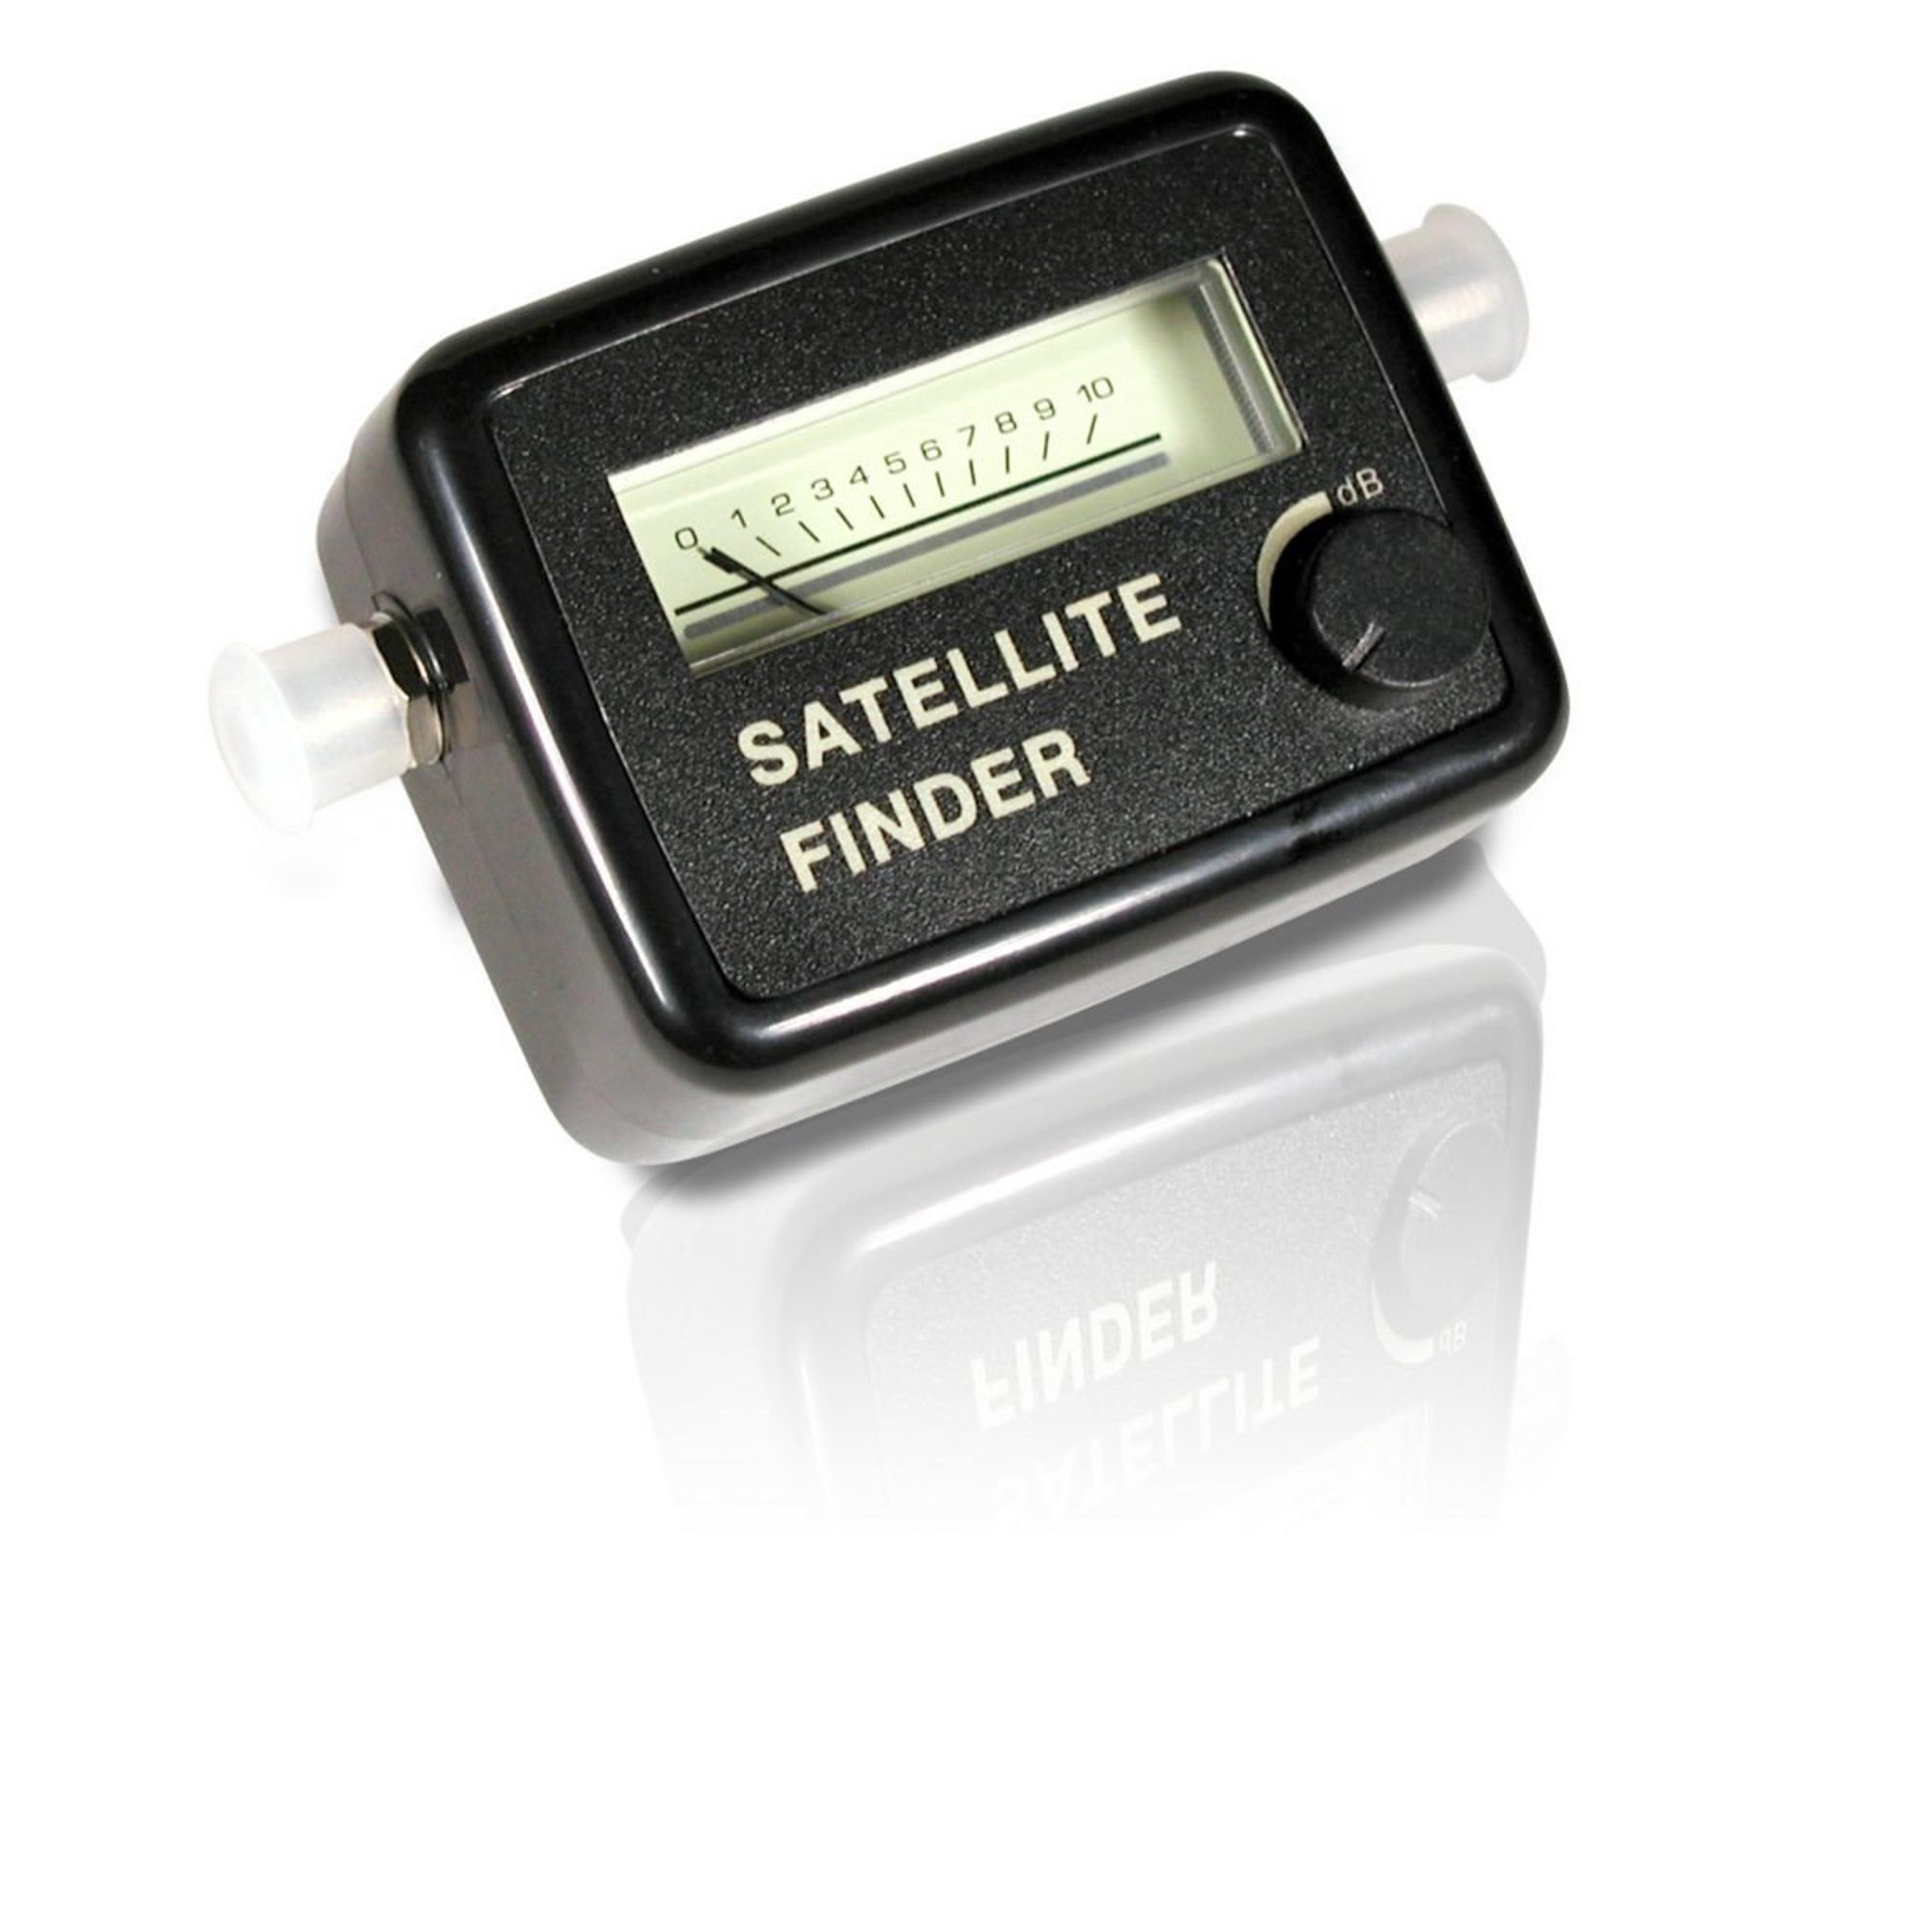 Satellite Finder Sat Finder Signal Meter Buzzle for Directv Dish TV network